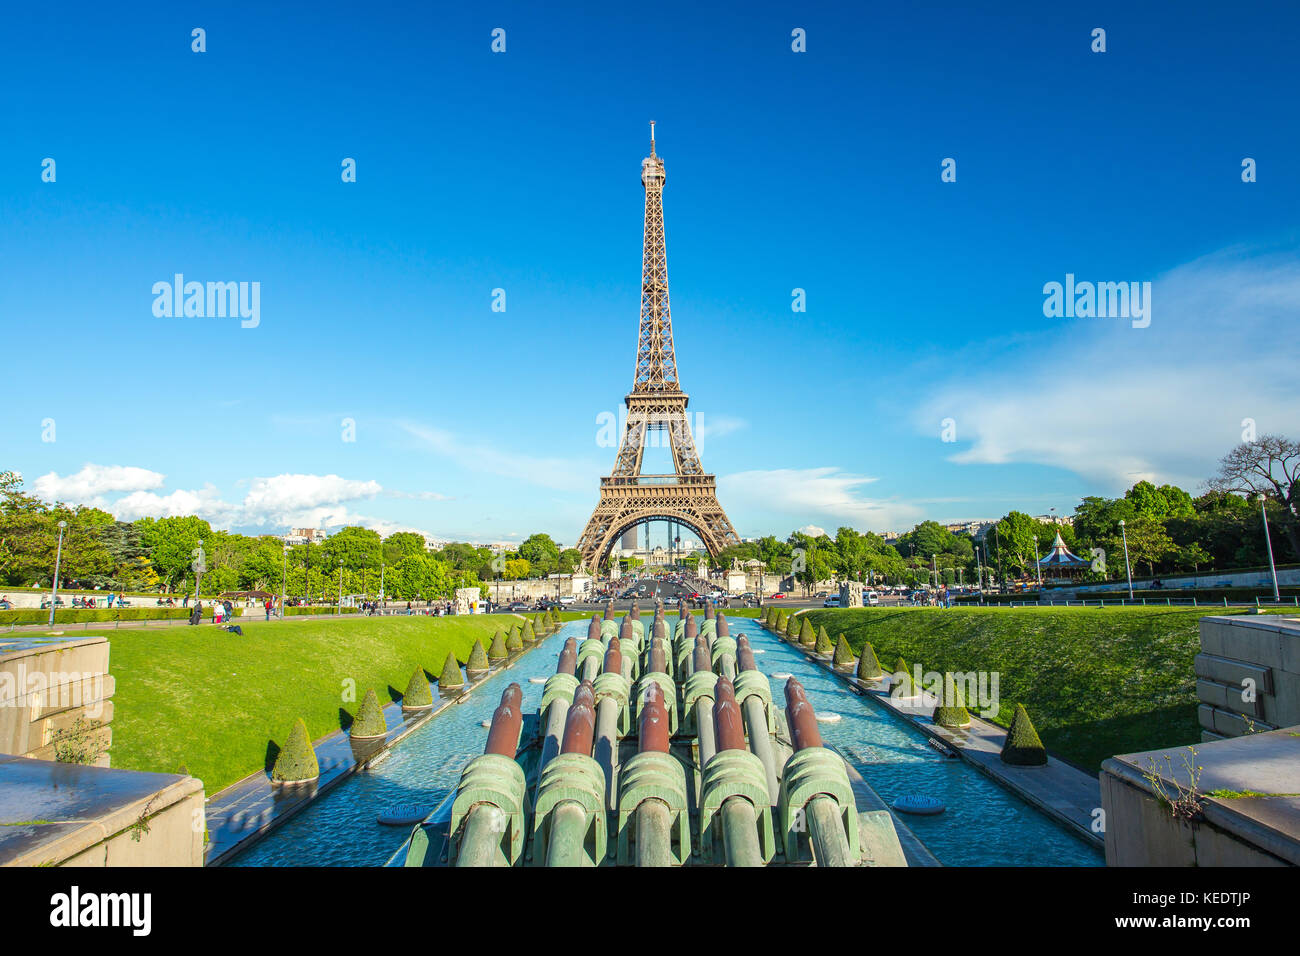 Eiffel Tower seen from Jardins du Trocadero at a sunny summer day in Paris, France. - Stock Image